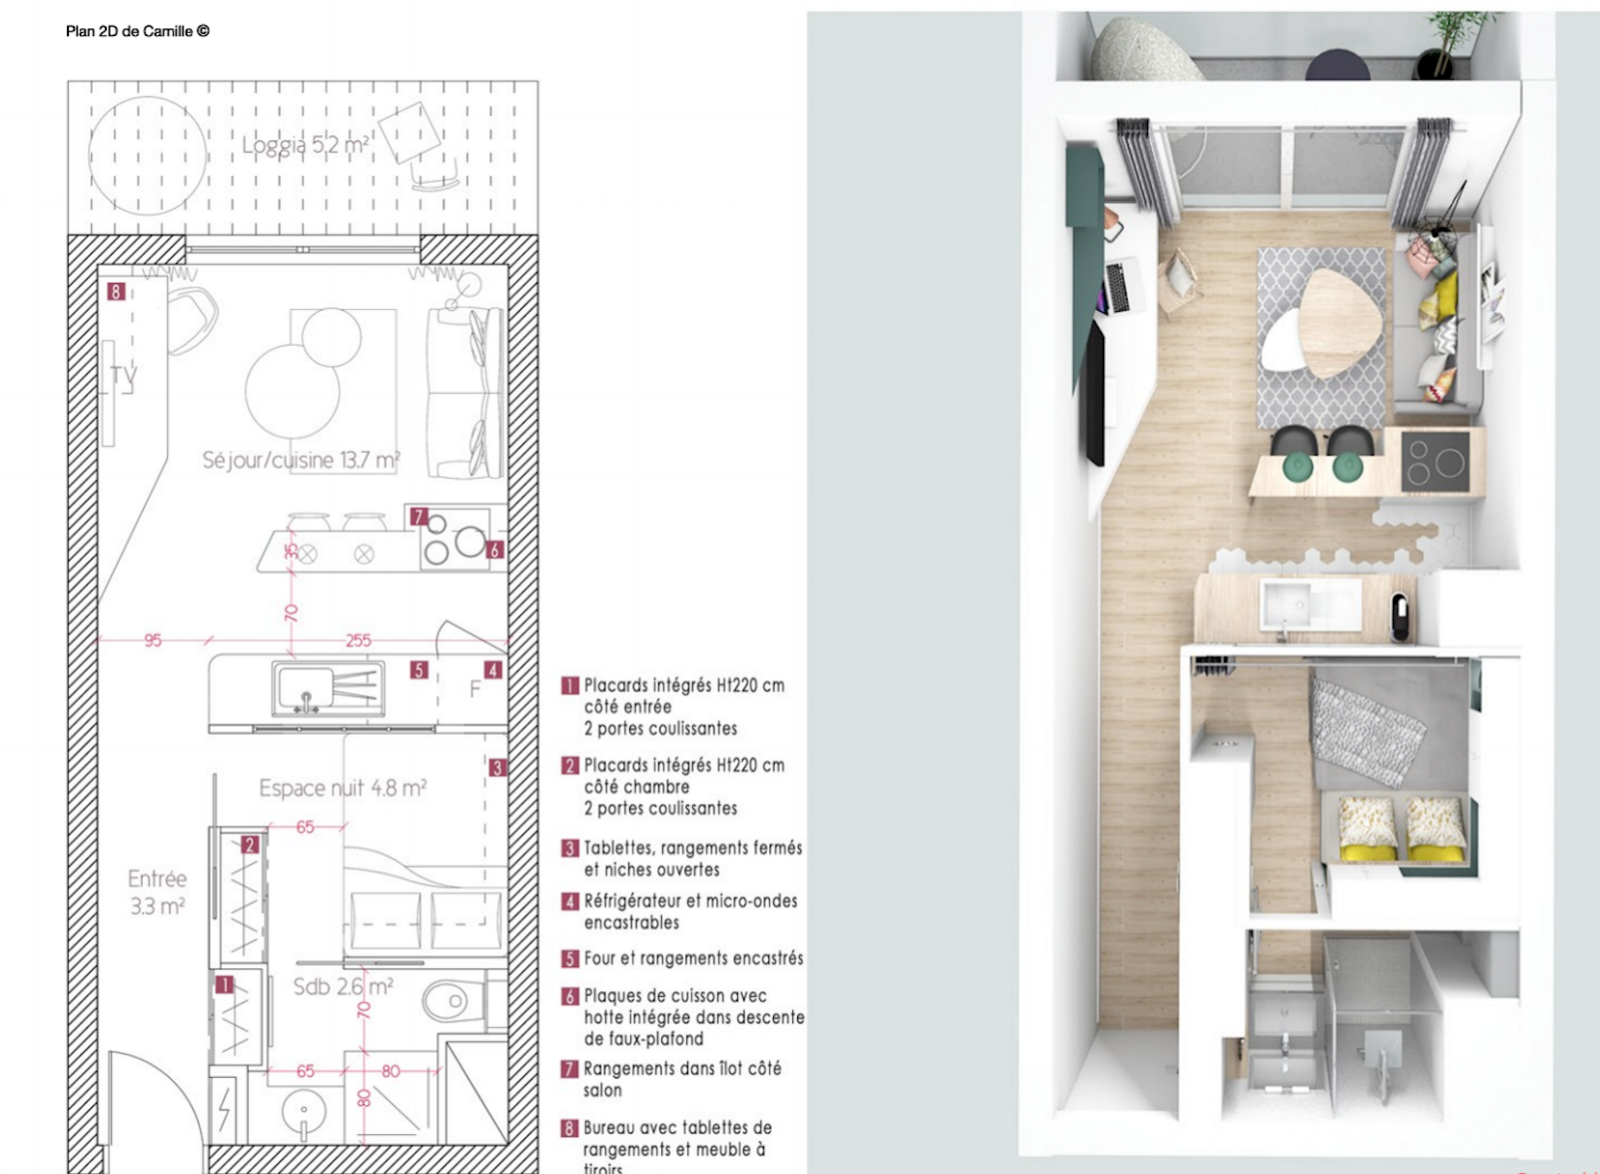 Plan amenagement studio 25m2 for Amenager studio 25m2